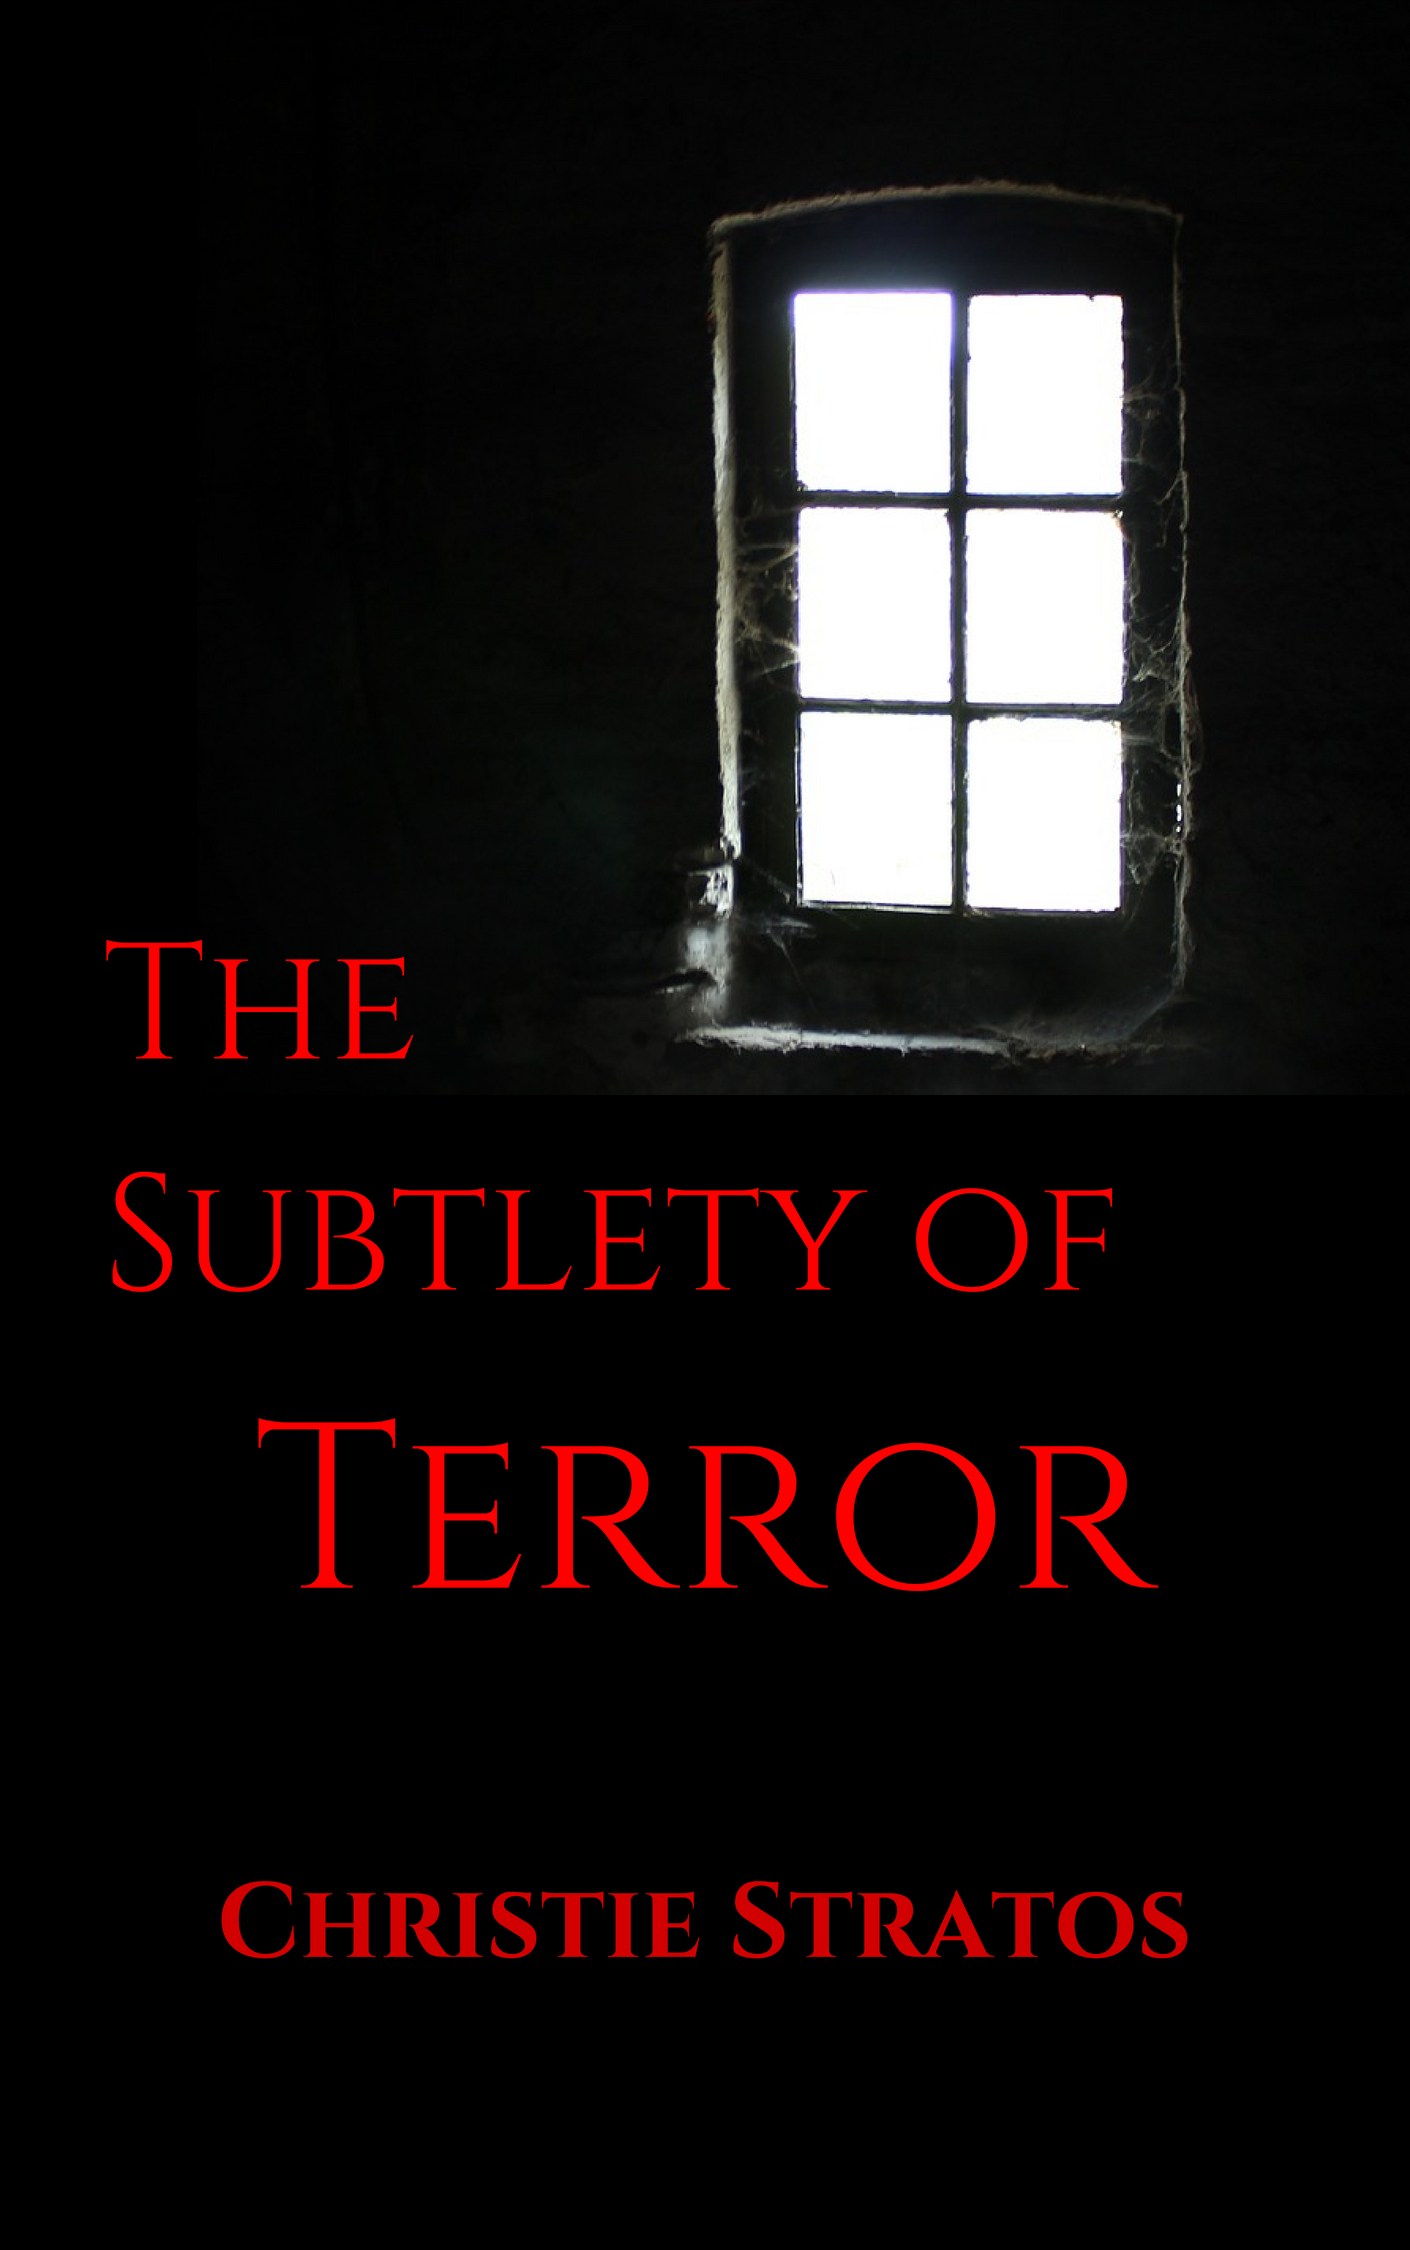 The Subtlety of Terror